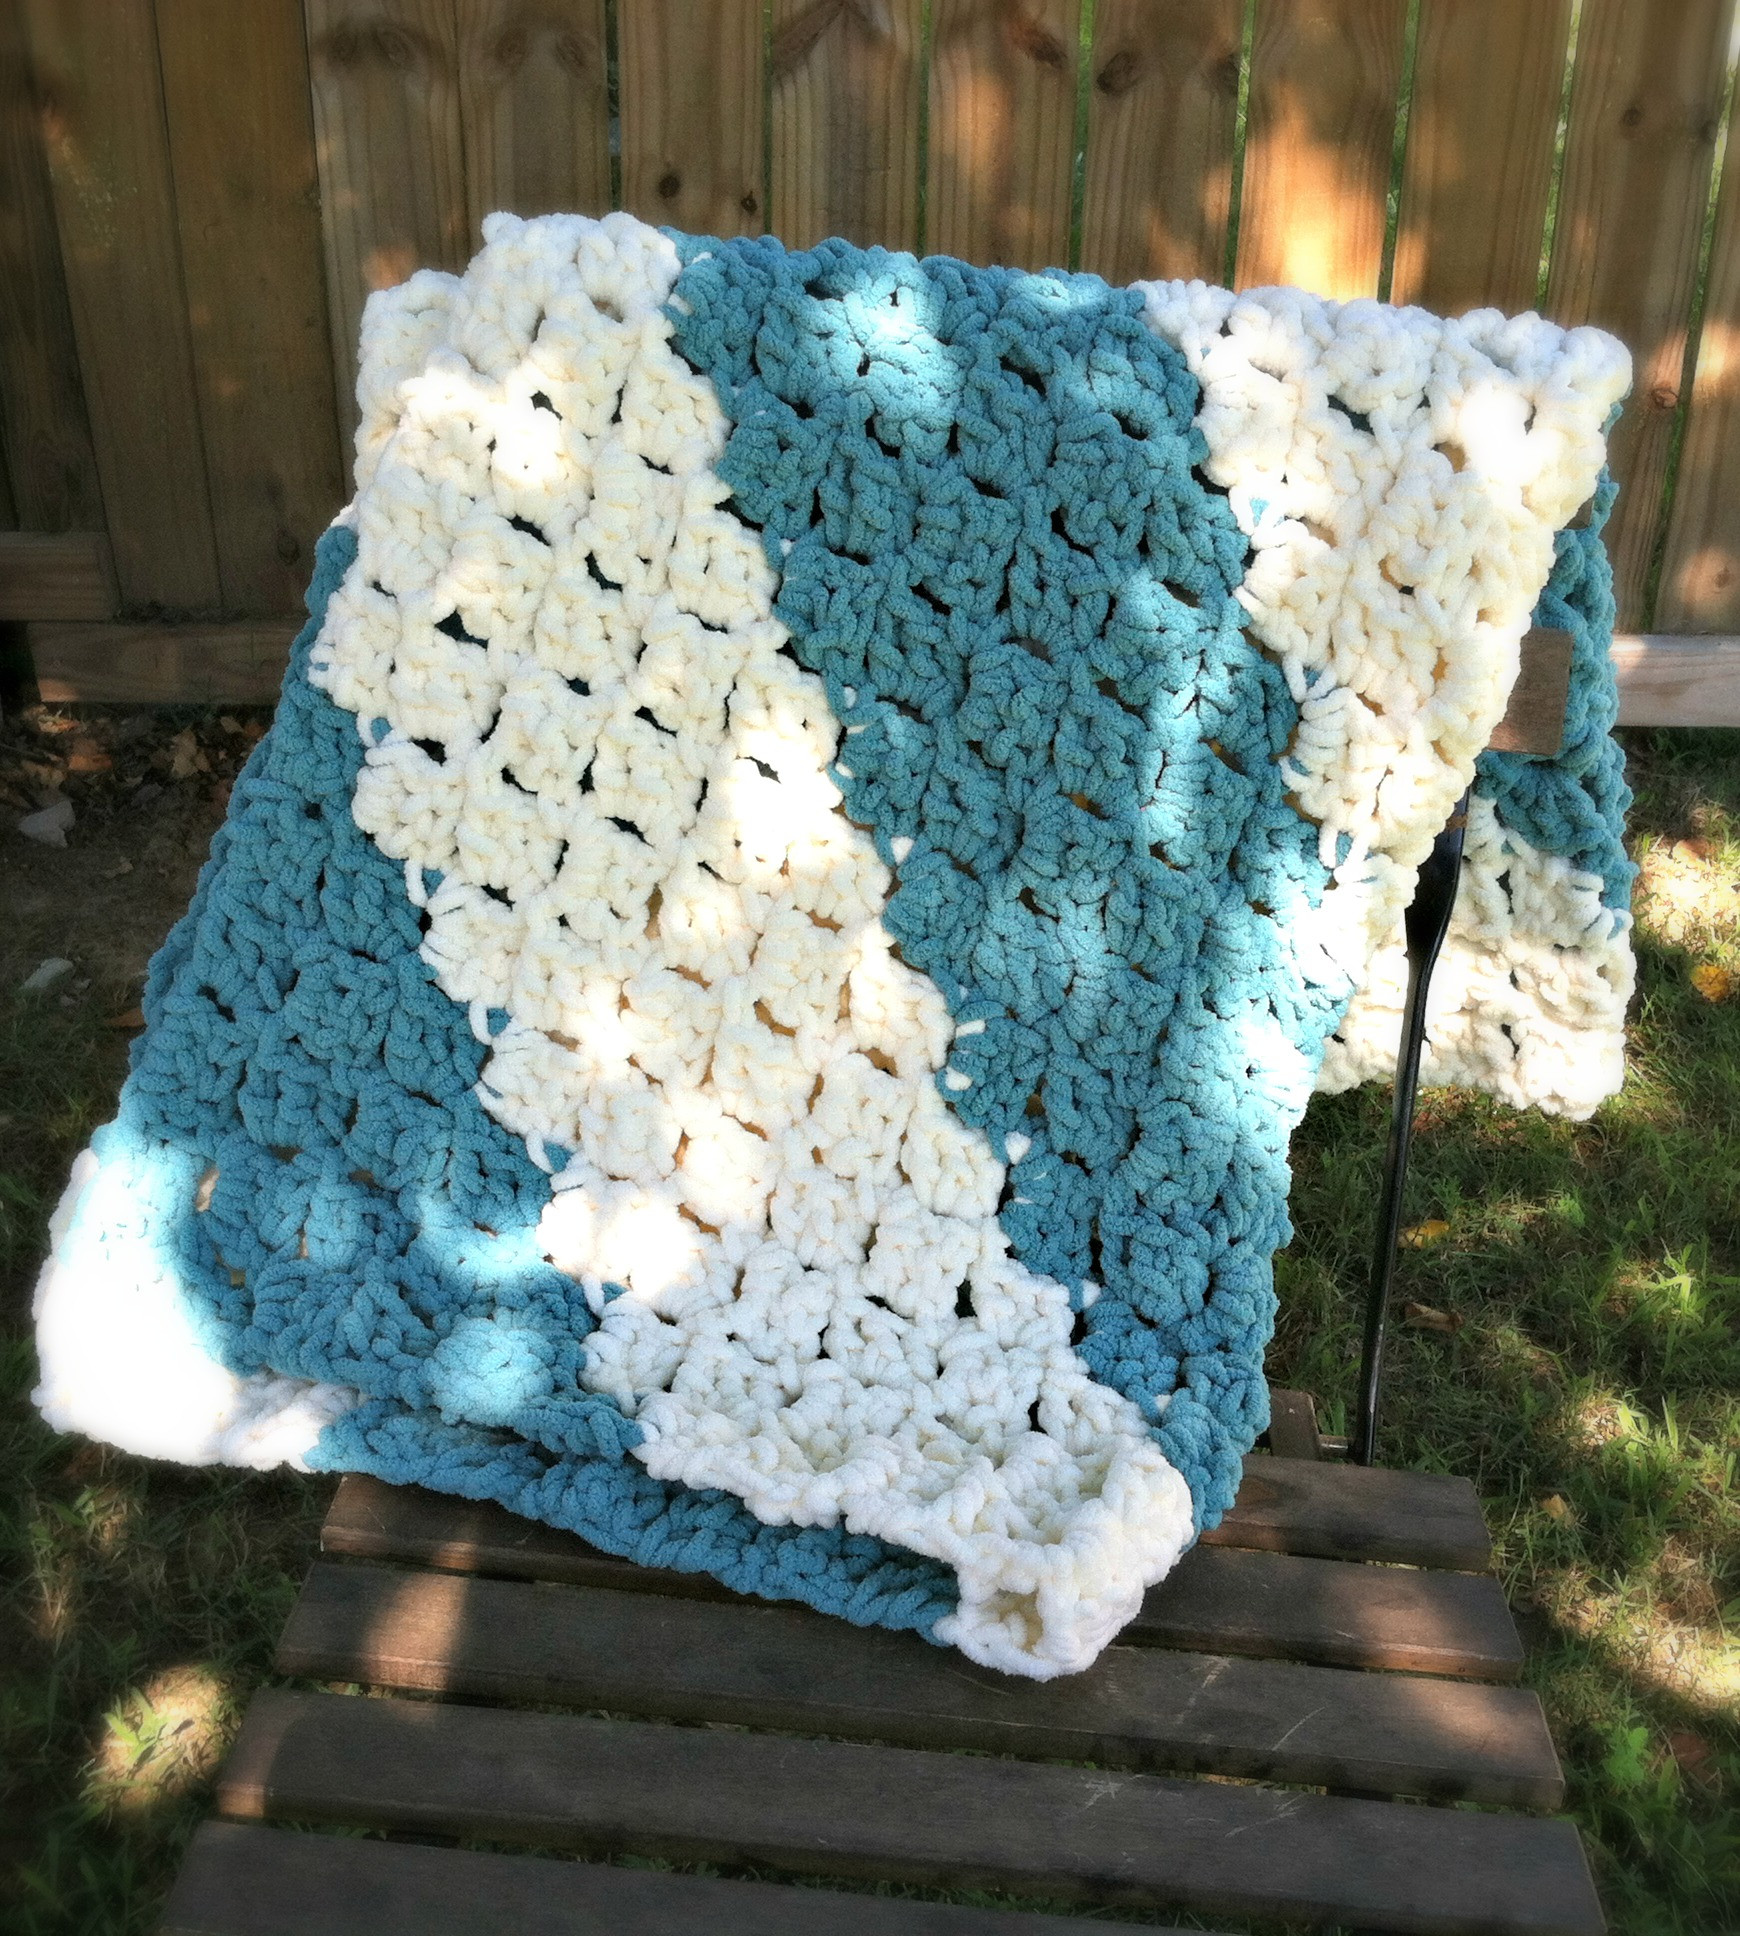 Bernat Crochet Blanket Awesome Quick and Easy Baby Blanket Free Crochet Pattern Of Incredible 49 Images Bernat Crochet Blanket